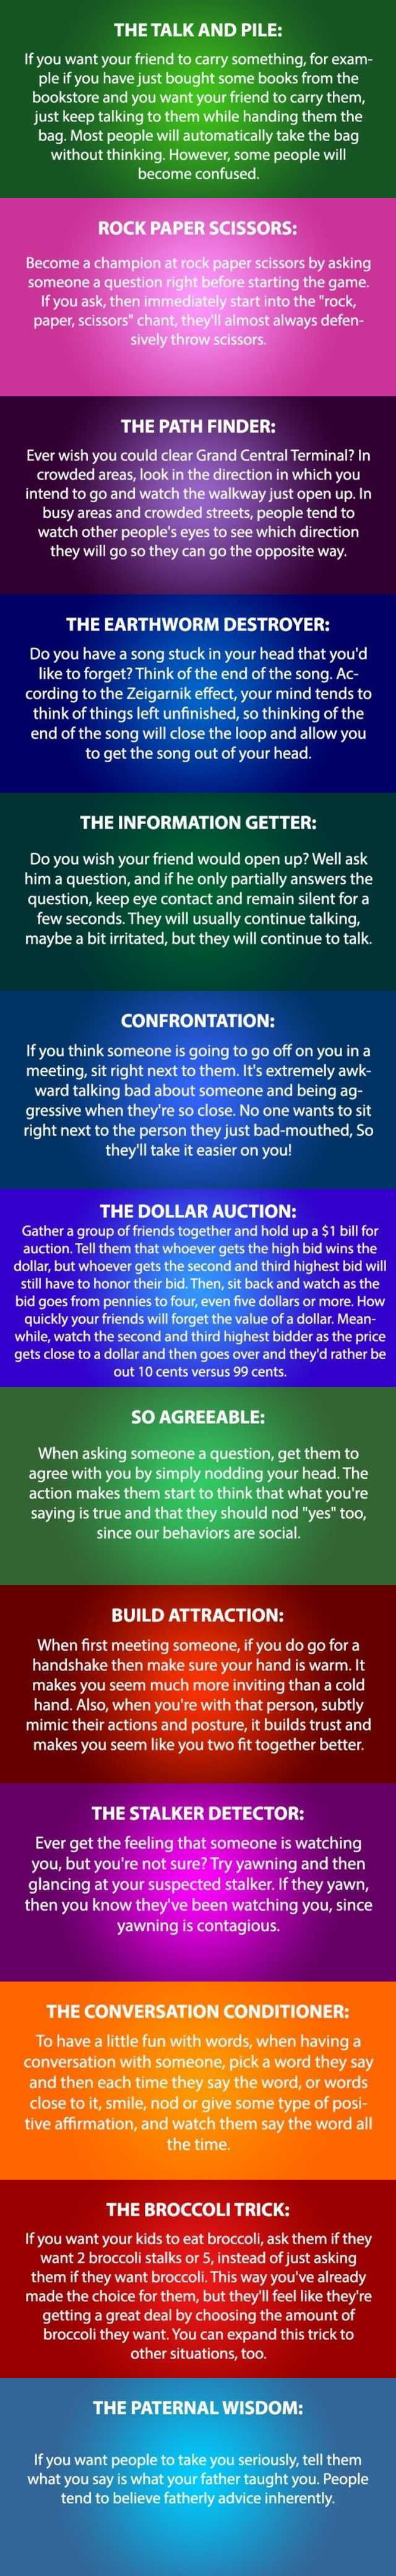 Some psychology tricks to try - 9GAG